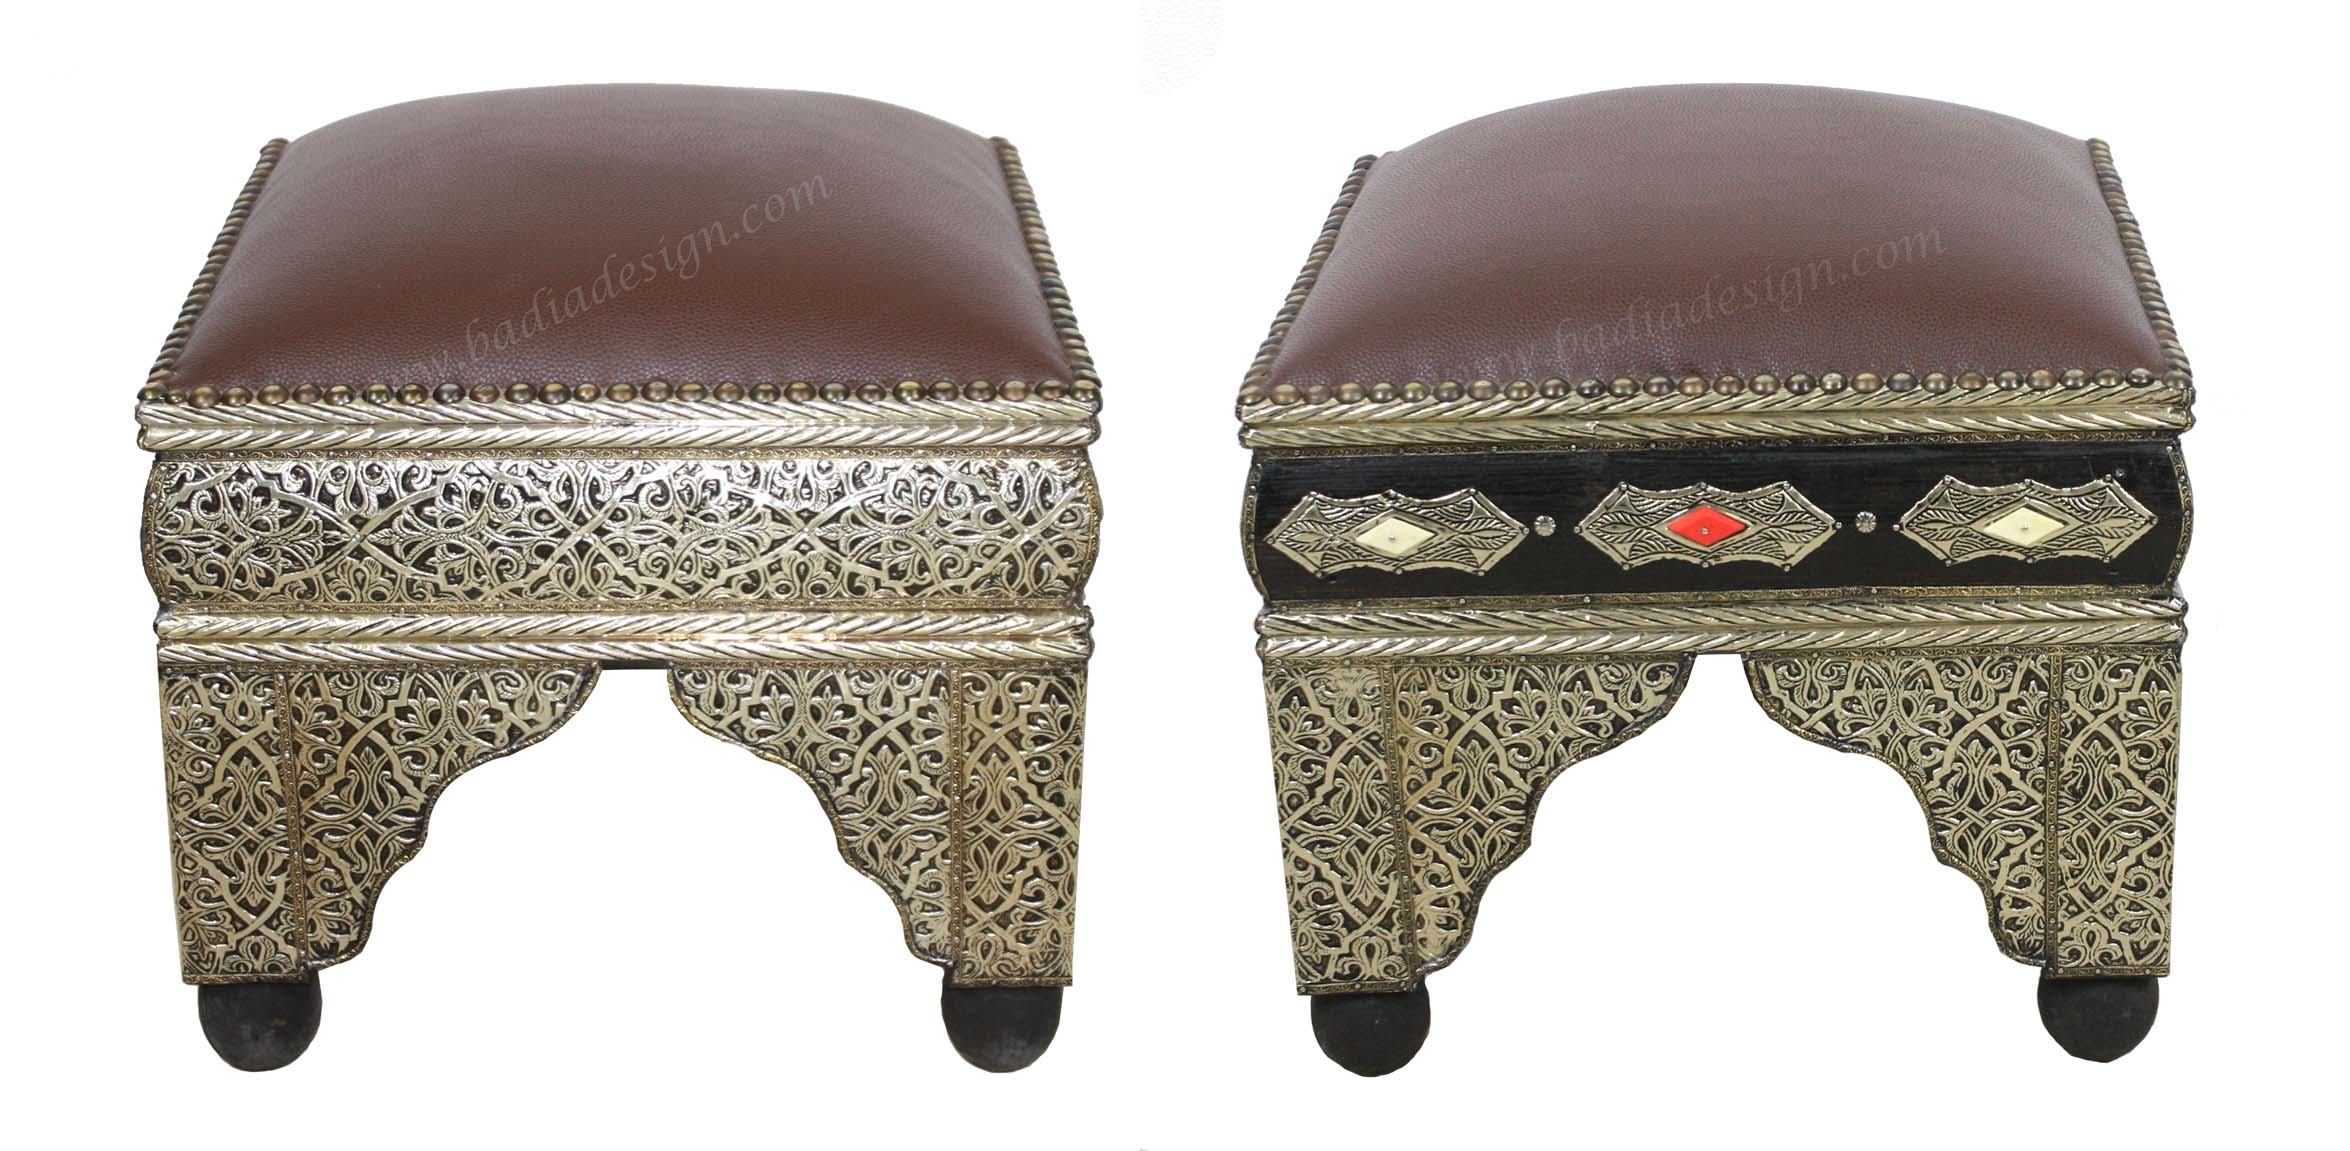 moroccan-leather-ottoman-mb-ch025.jpg